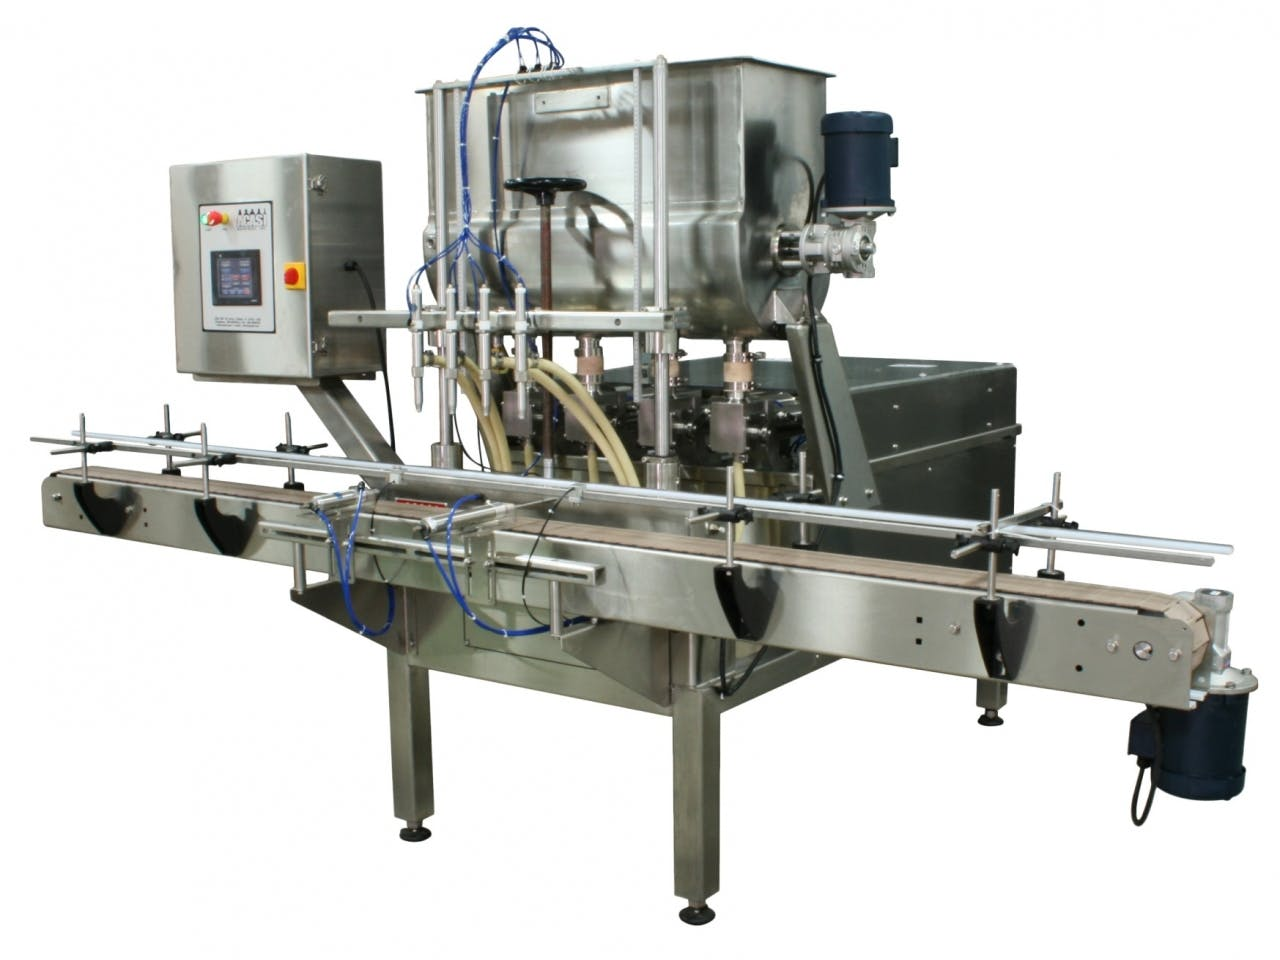 Piston Filler - Model TruPiston-4 Bottle filler sold by ACASI Machinery